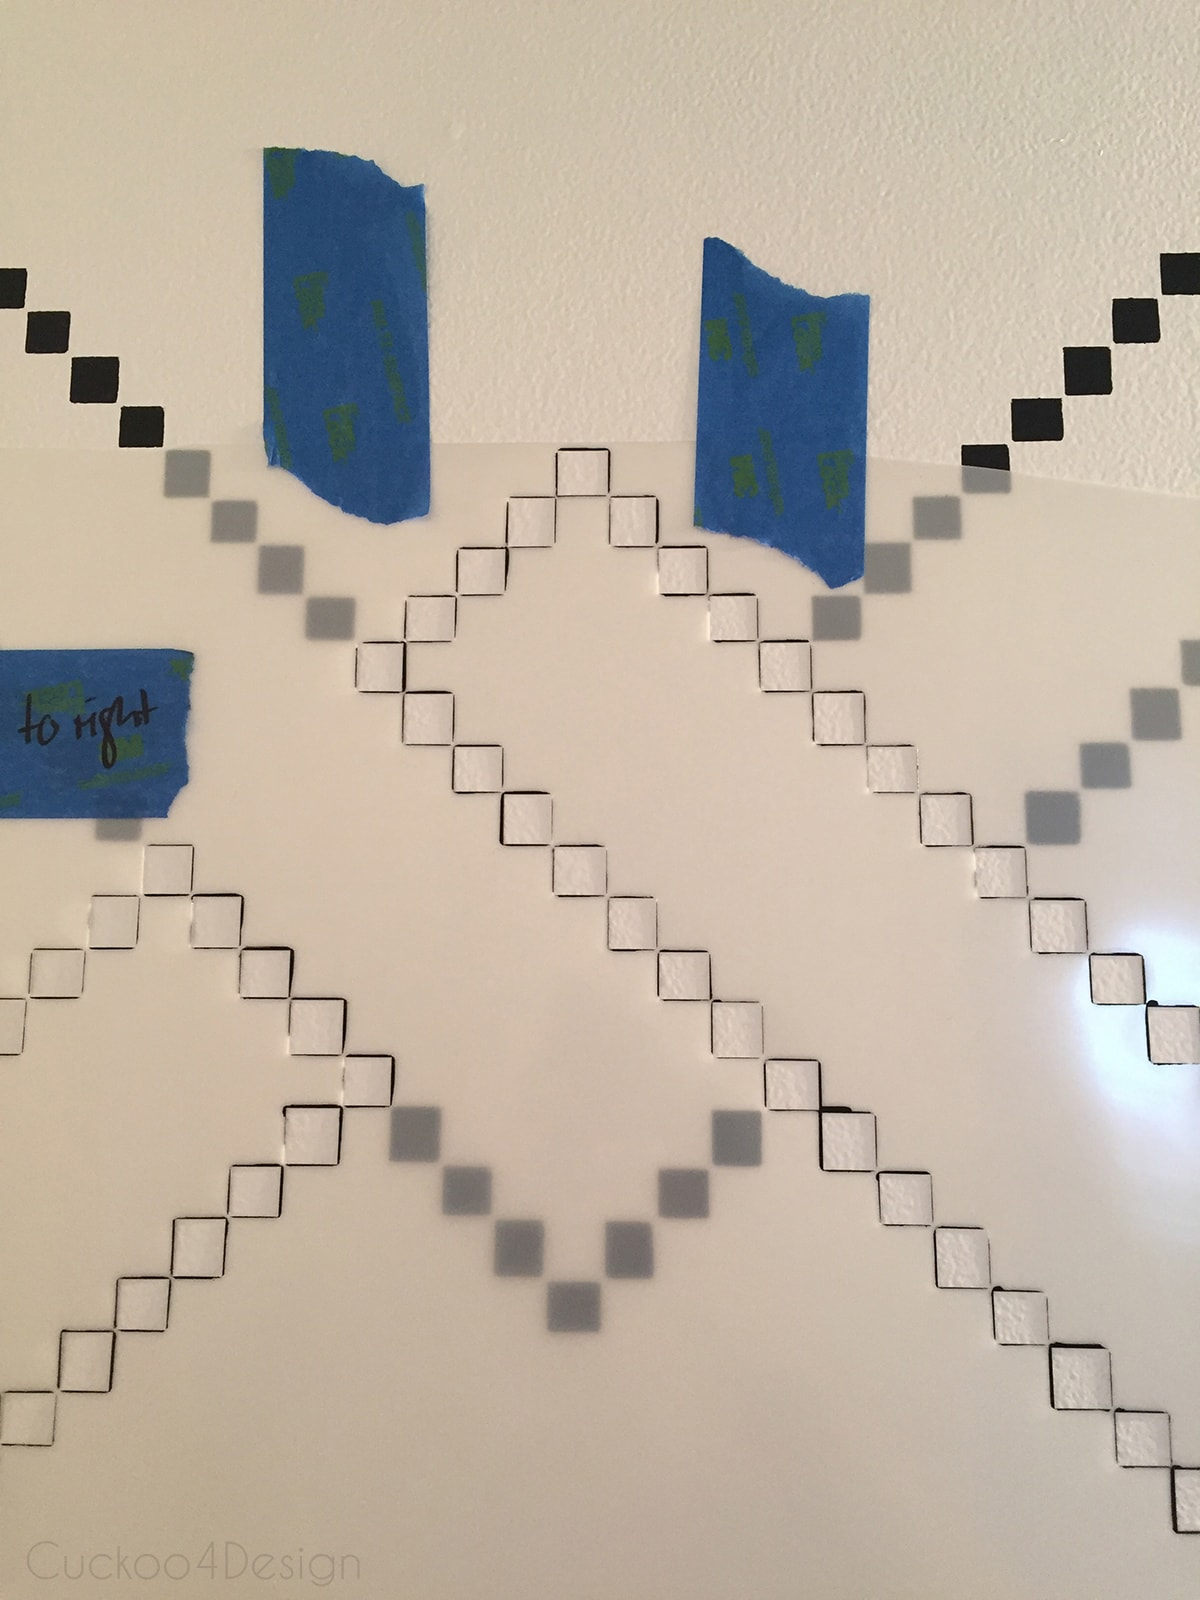 overlaying a stencil and matching the pattern